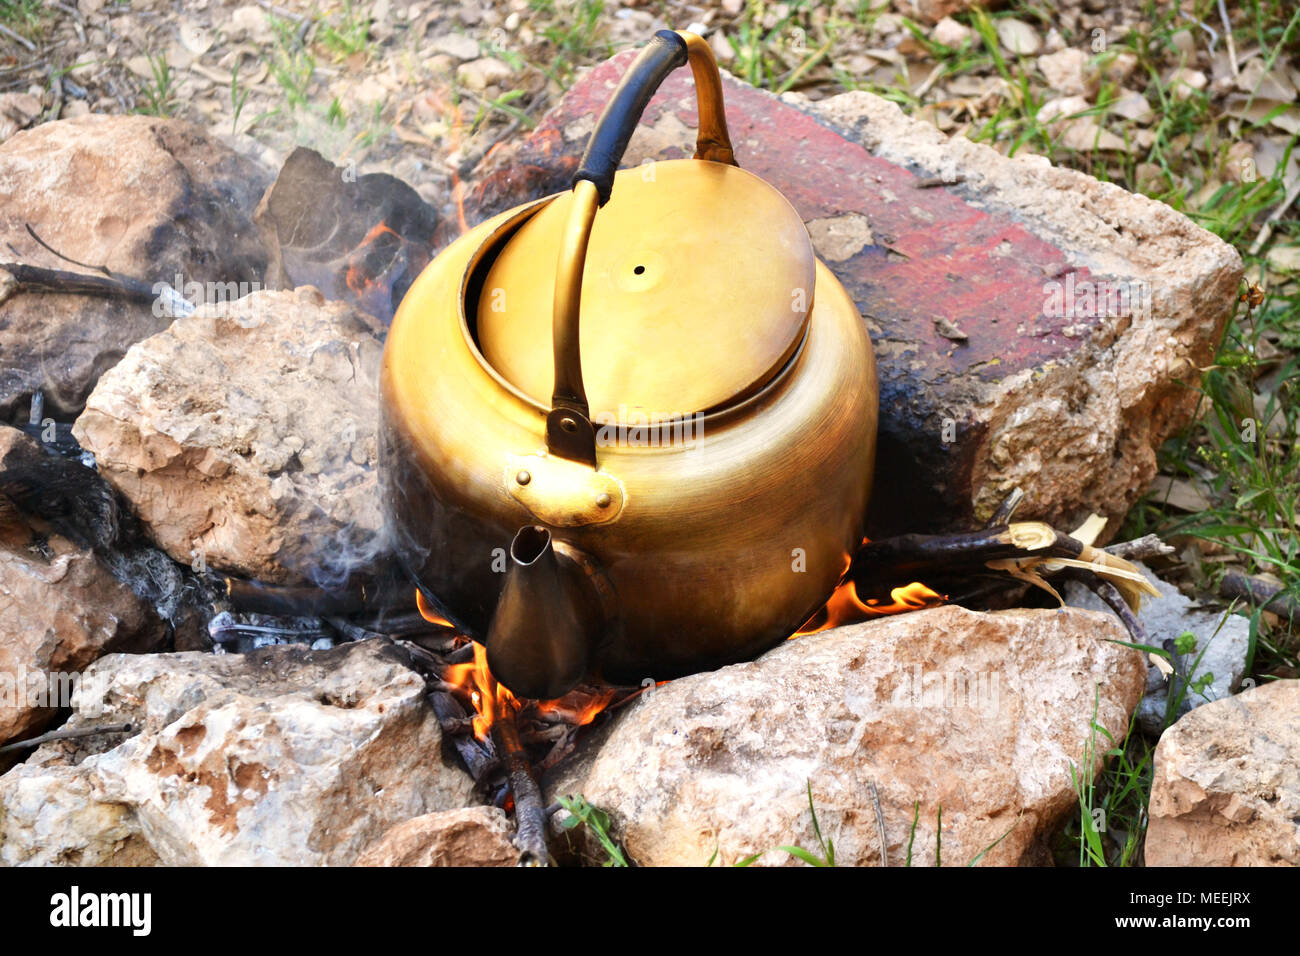 Golden old kettle to boil water on wood fire while camping - Stock Image